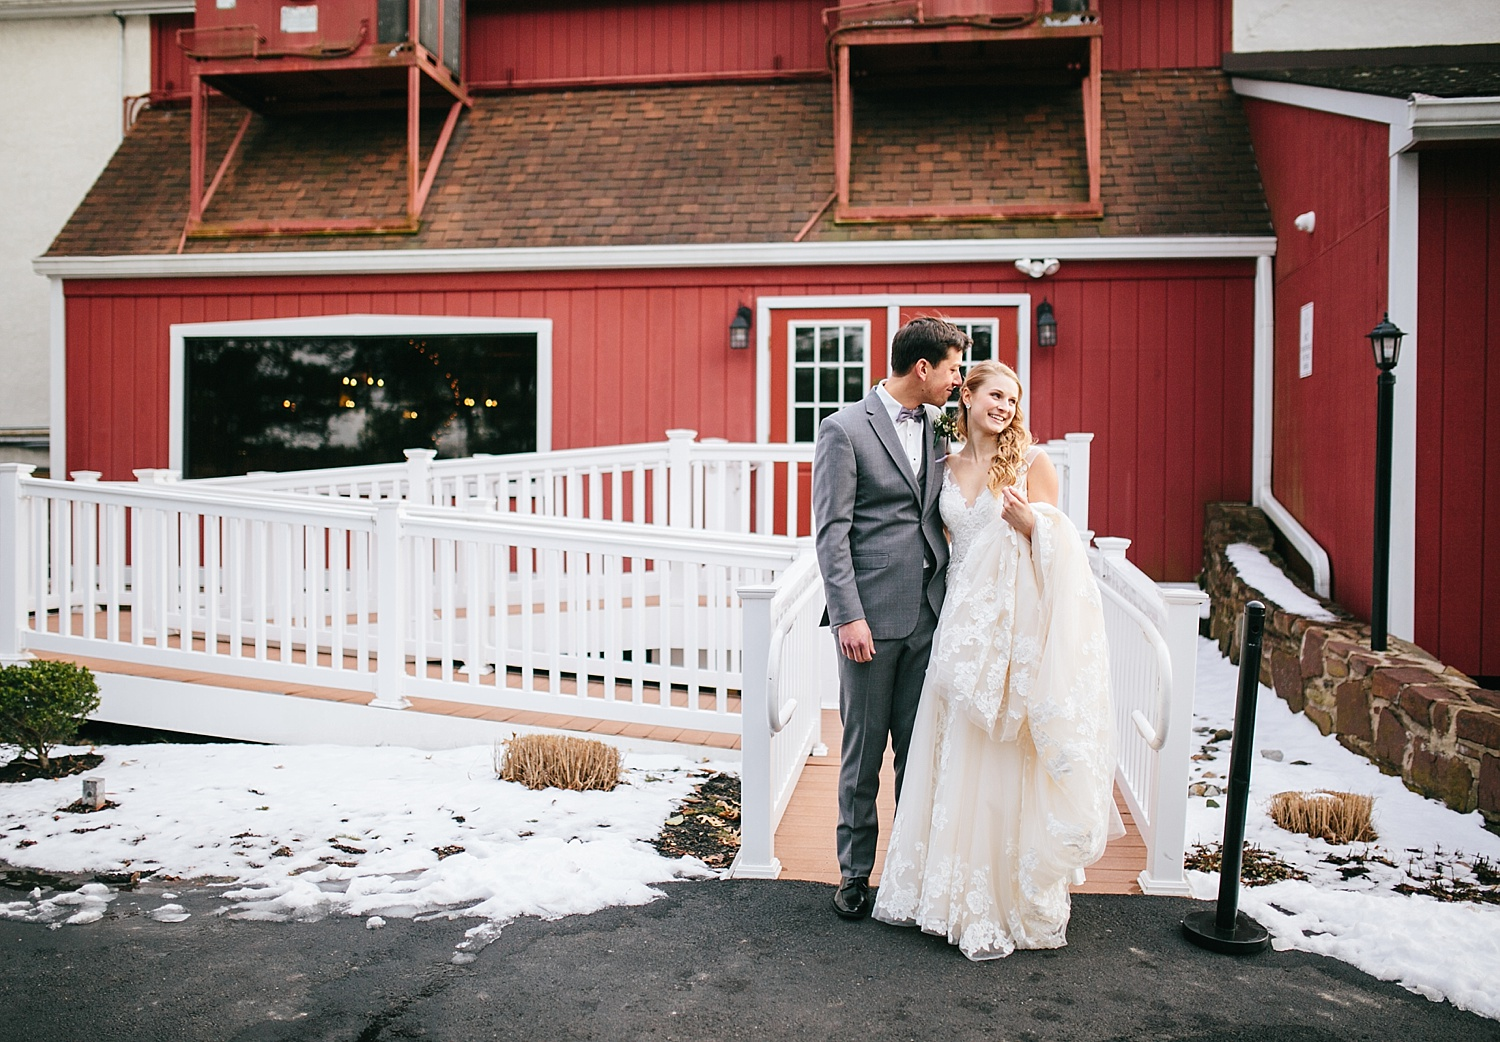 jessdavid_barnonbridge_phoenixville_winter_wedding_image_055.jpg